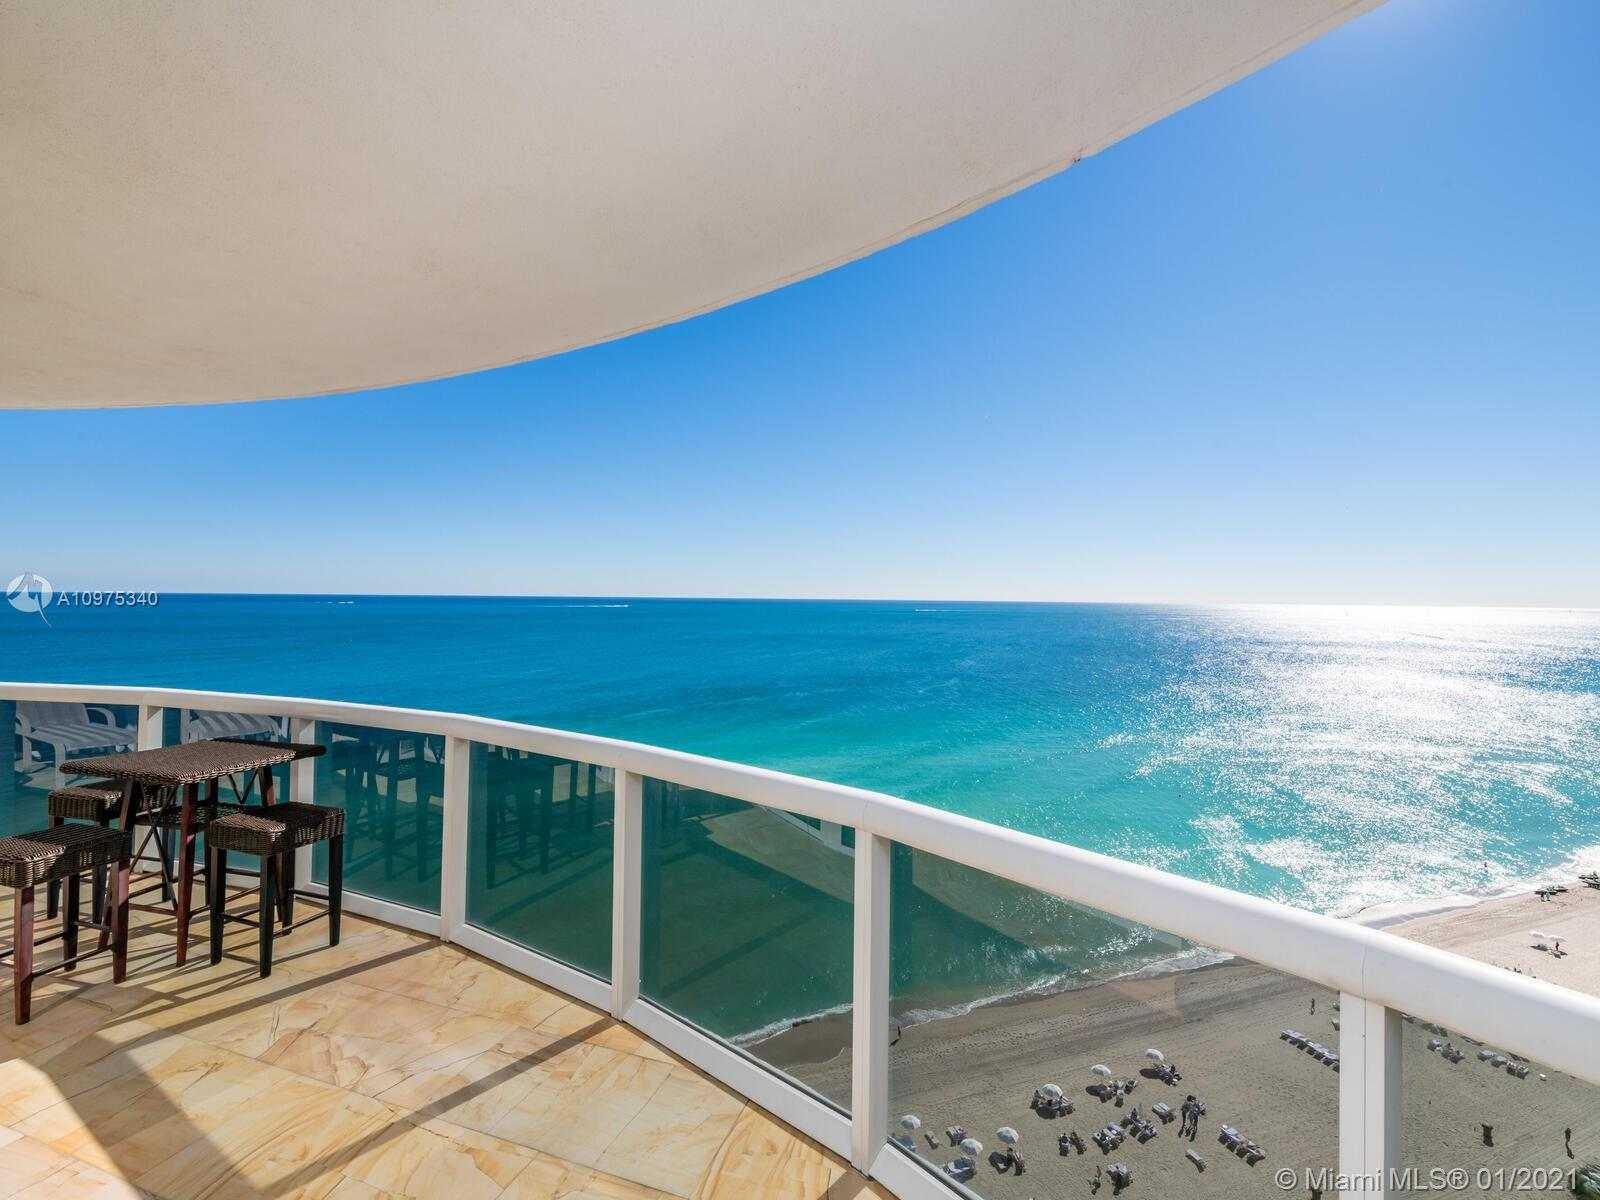 A Best Priced Opportunity @ Trump Royale! Be one of the First to show this Residence to your Clients.  Expansive 3063 sf, apt. 3 bed/3.5 bath's.  Direct Ocean Views with PANORAMIC Ceiling to Floor Windows, Wall of Windows with Electric Blinds that extend from Living Room to Master Bedroom!! Private Foyer, Elevator directly opens to your Residence & beautiful double doors.  Marble flooring throughout, and kitchen upgrades too.   3 Pools, beach service, other amenities include, Tennis Courts, Spa, Fitness Center in Building and at Trump Hotel.